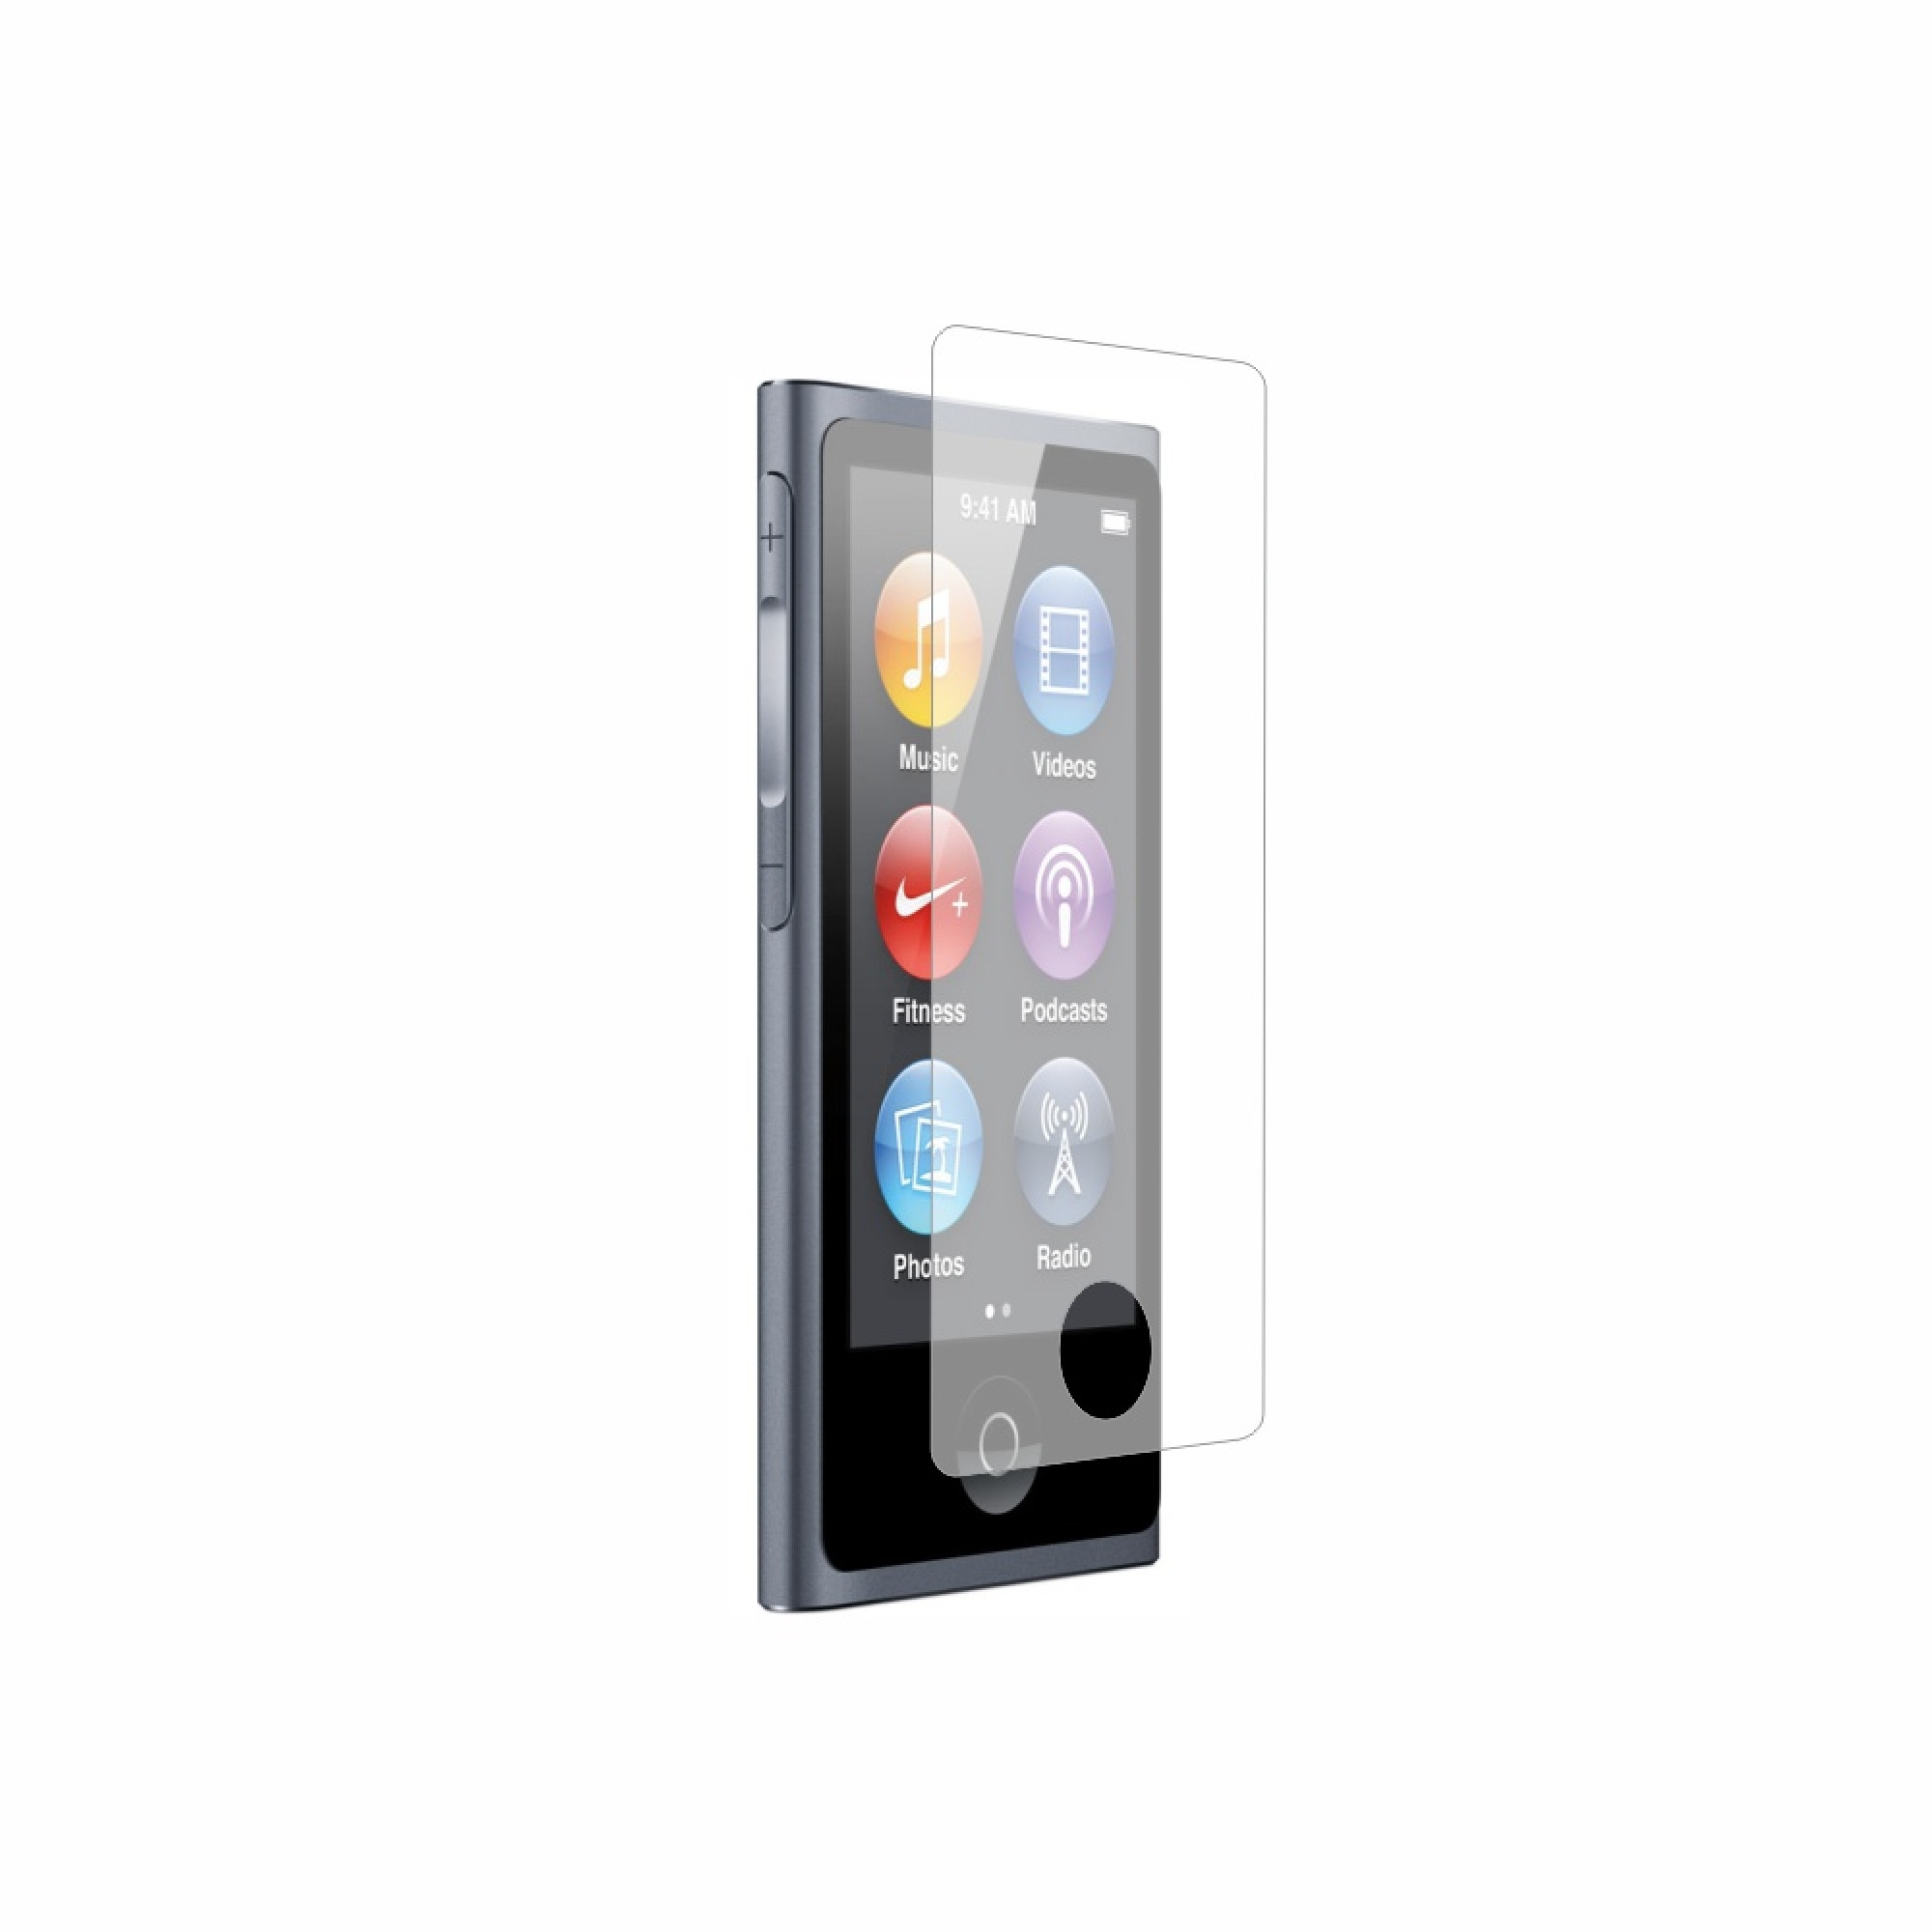 Folie de protectie Smart Protection iPod Nano 7th gen - 2buc x folie display imagine